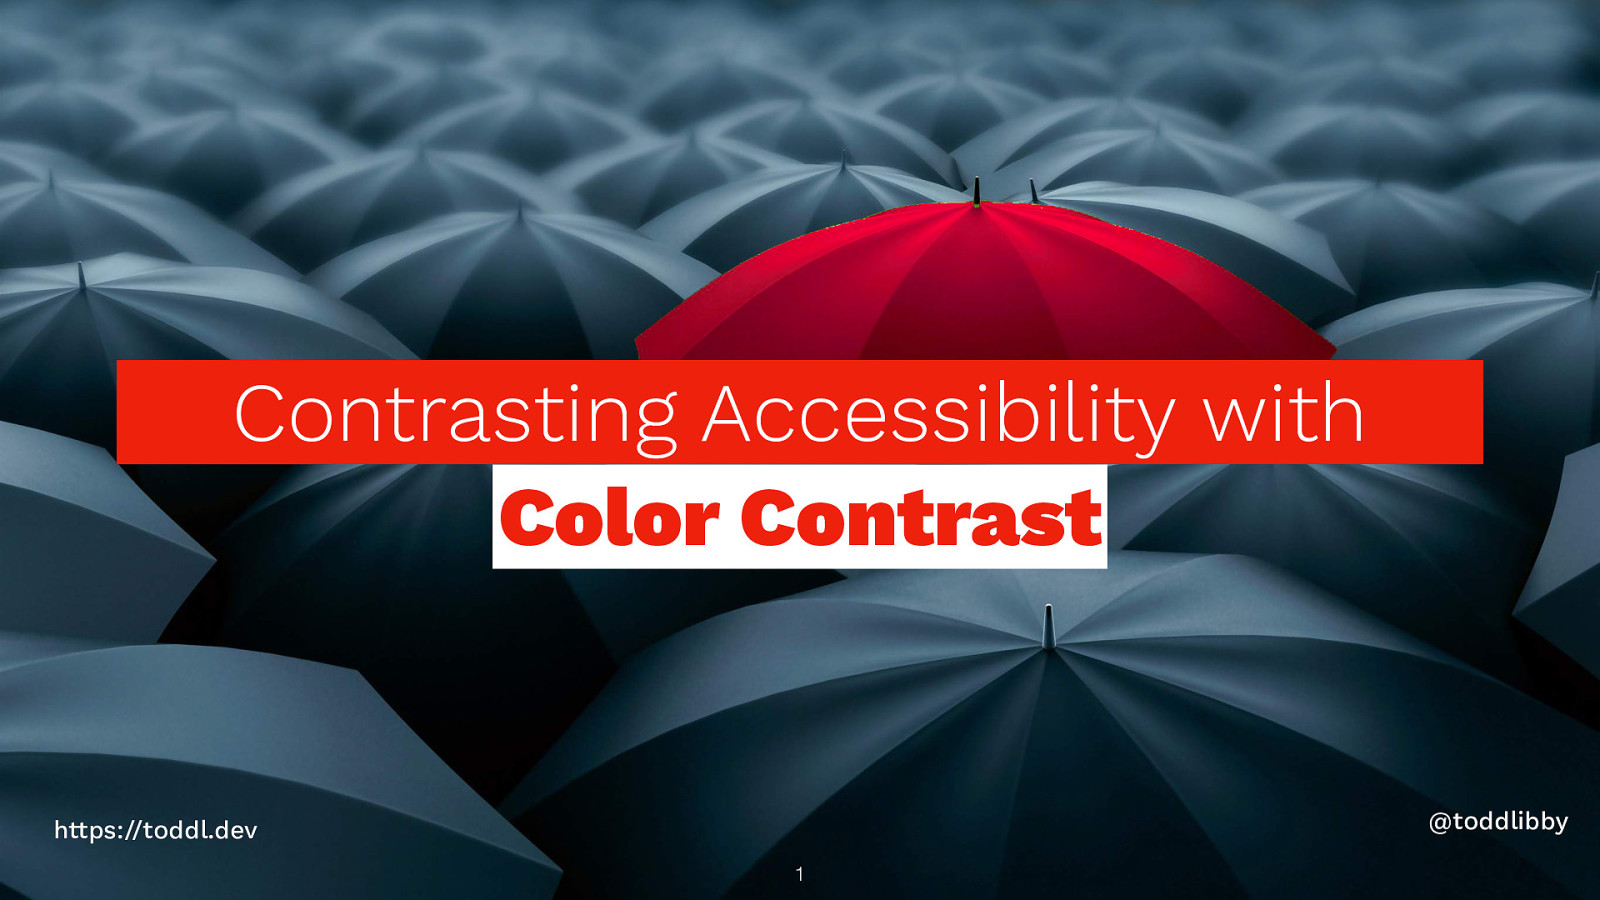 Contrasting Accessibility with Color Contrast